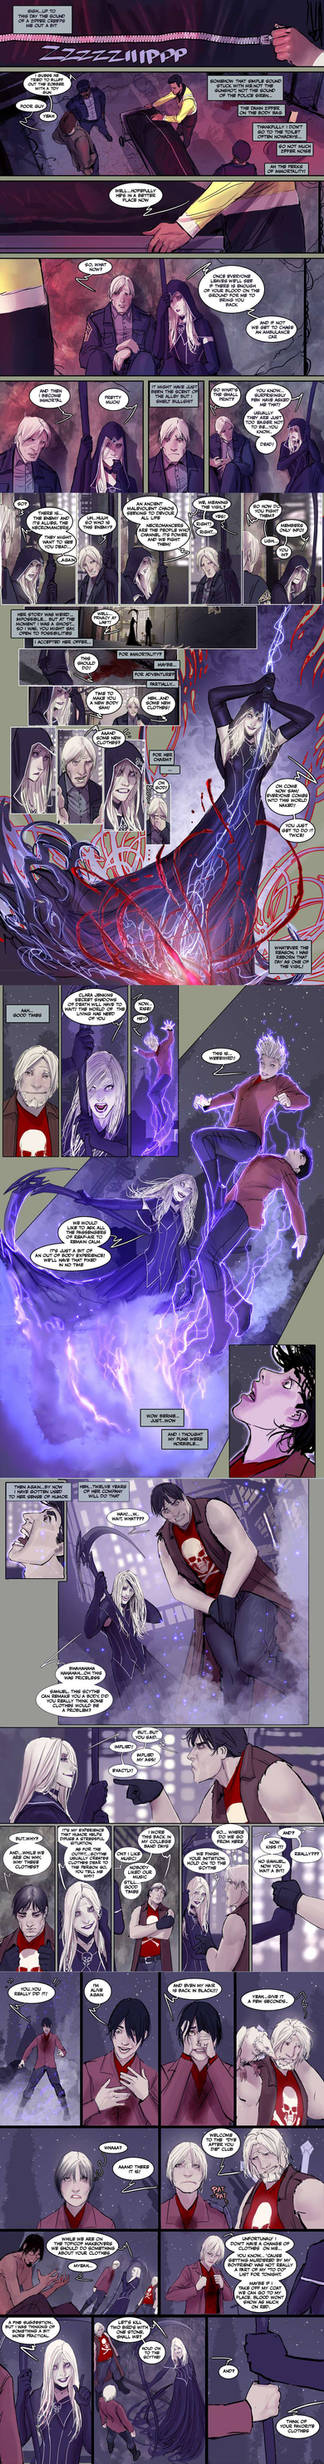 death vigil 2 first 5 pages first look :)